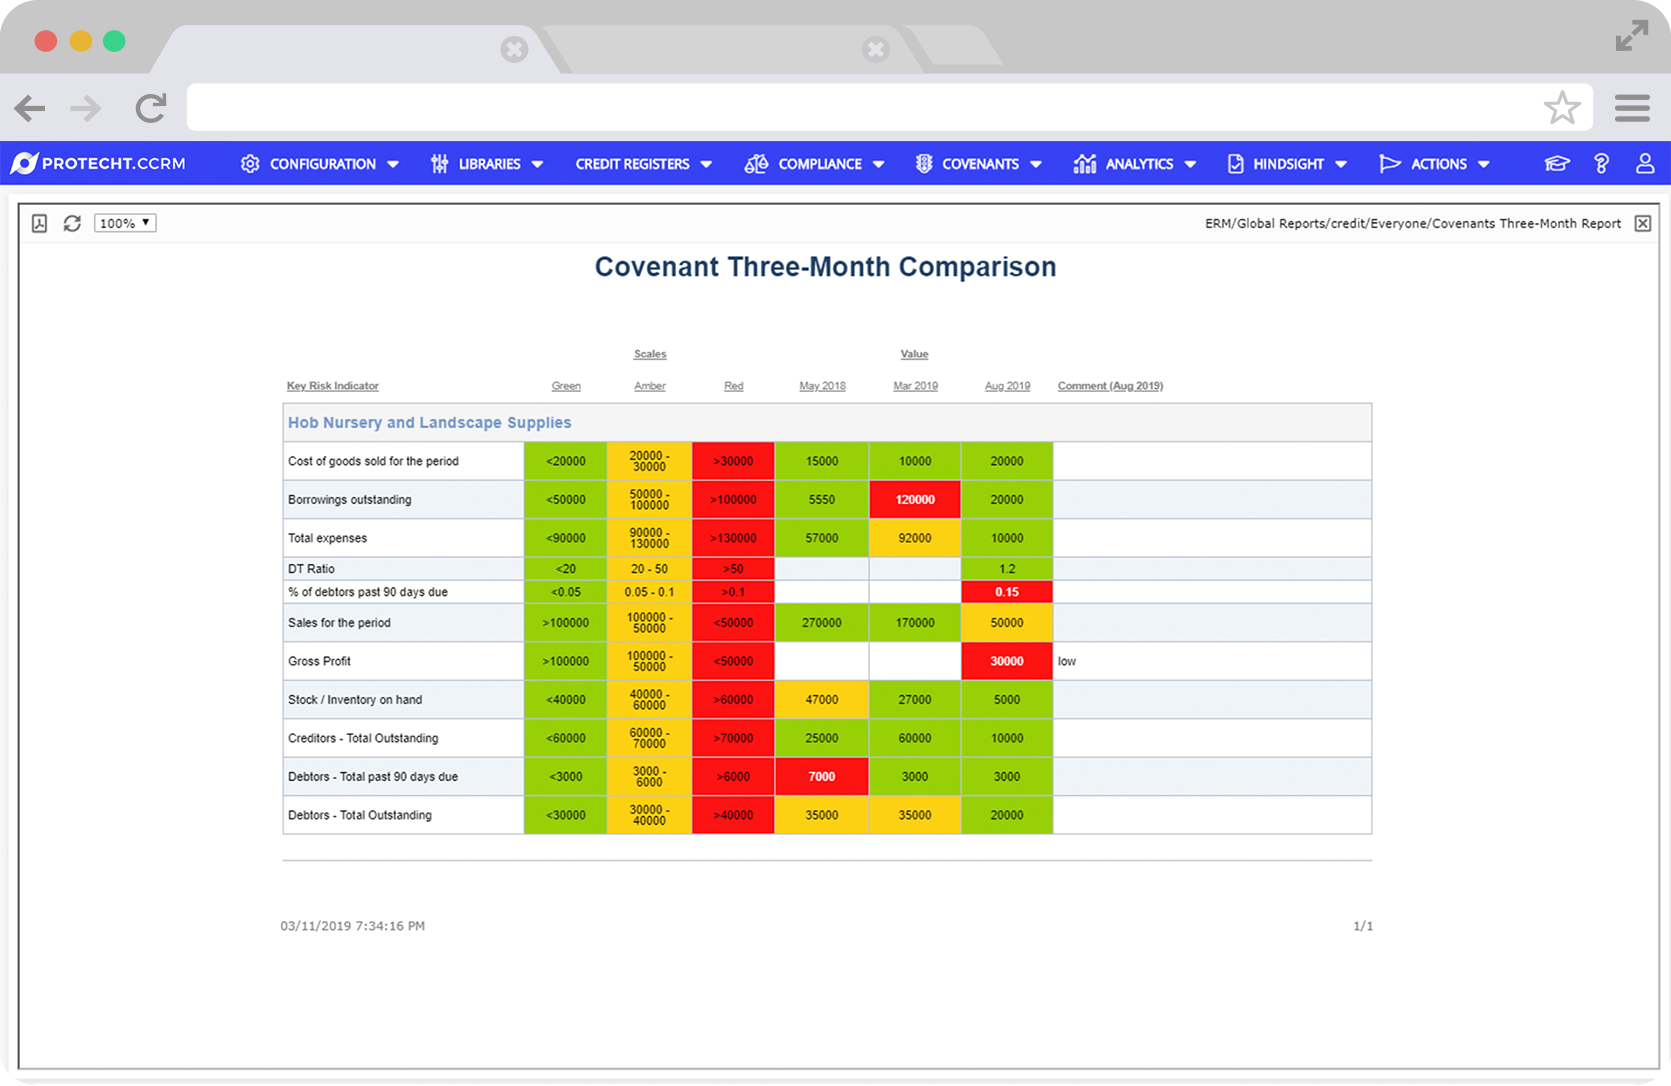 Features-CCRM-Covenant-Monitoring